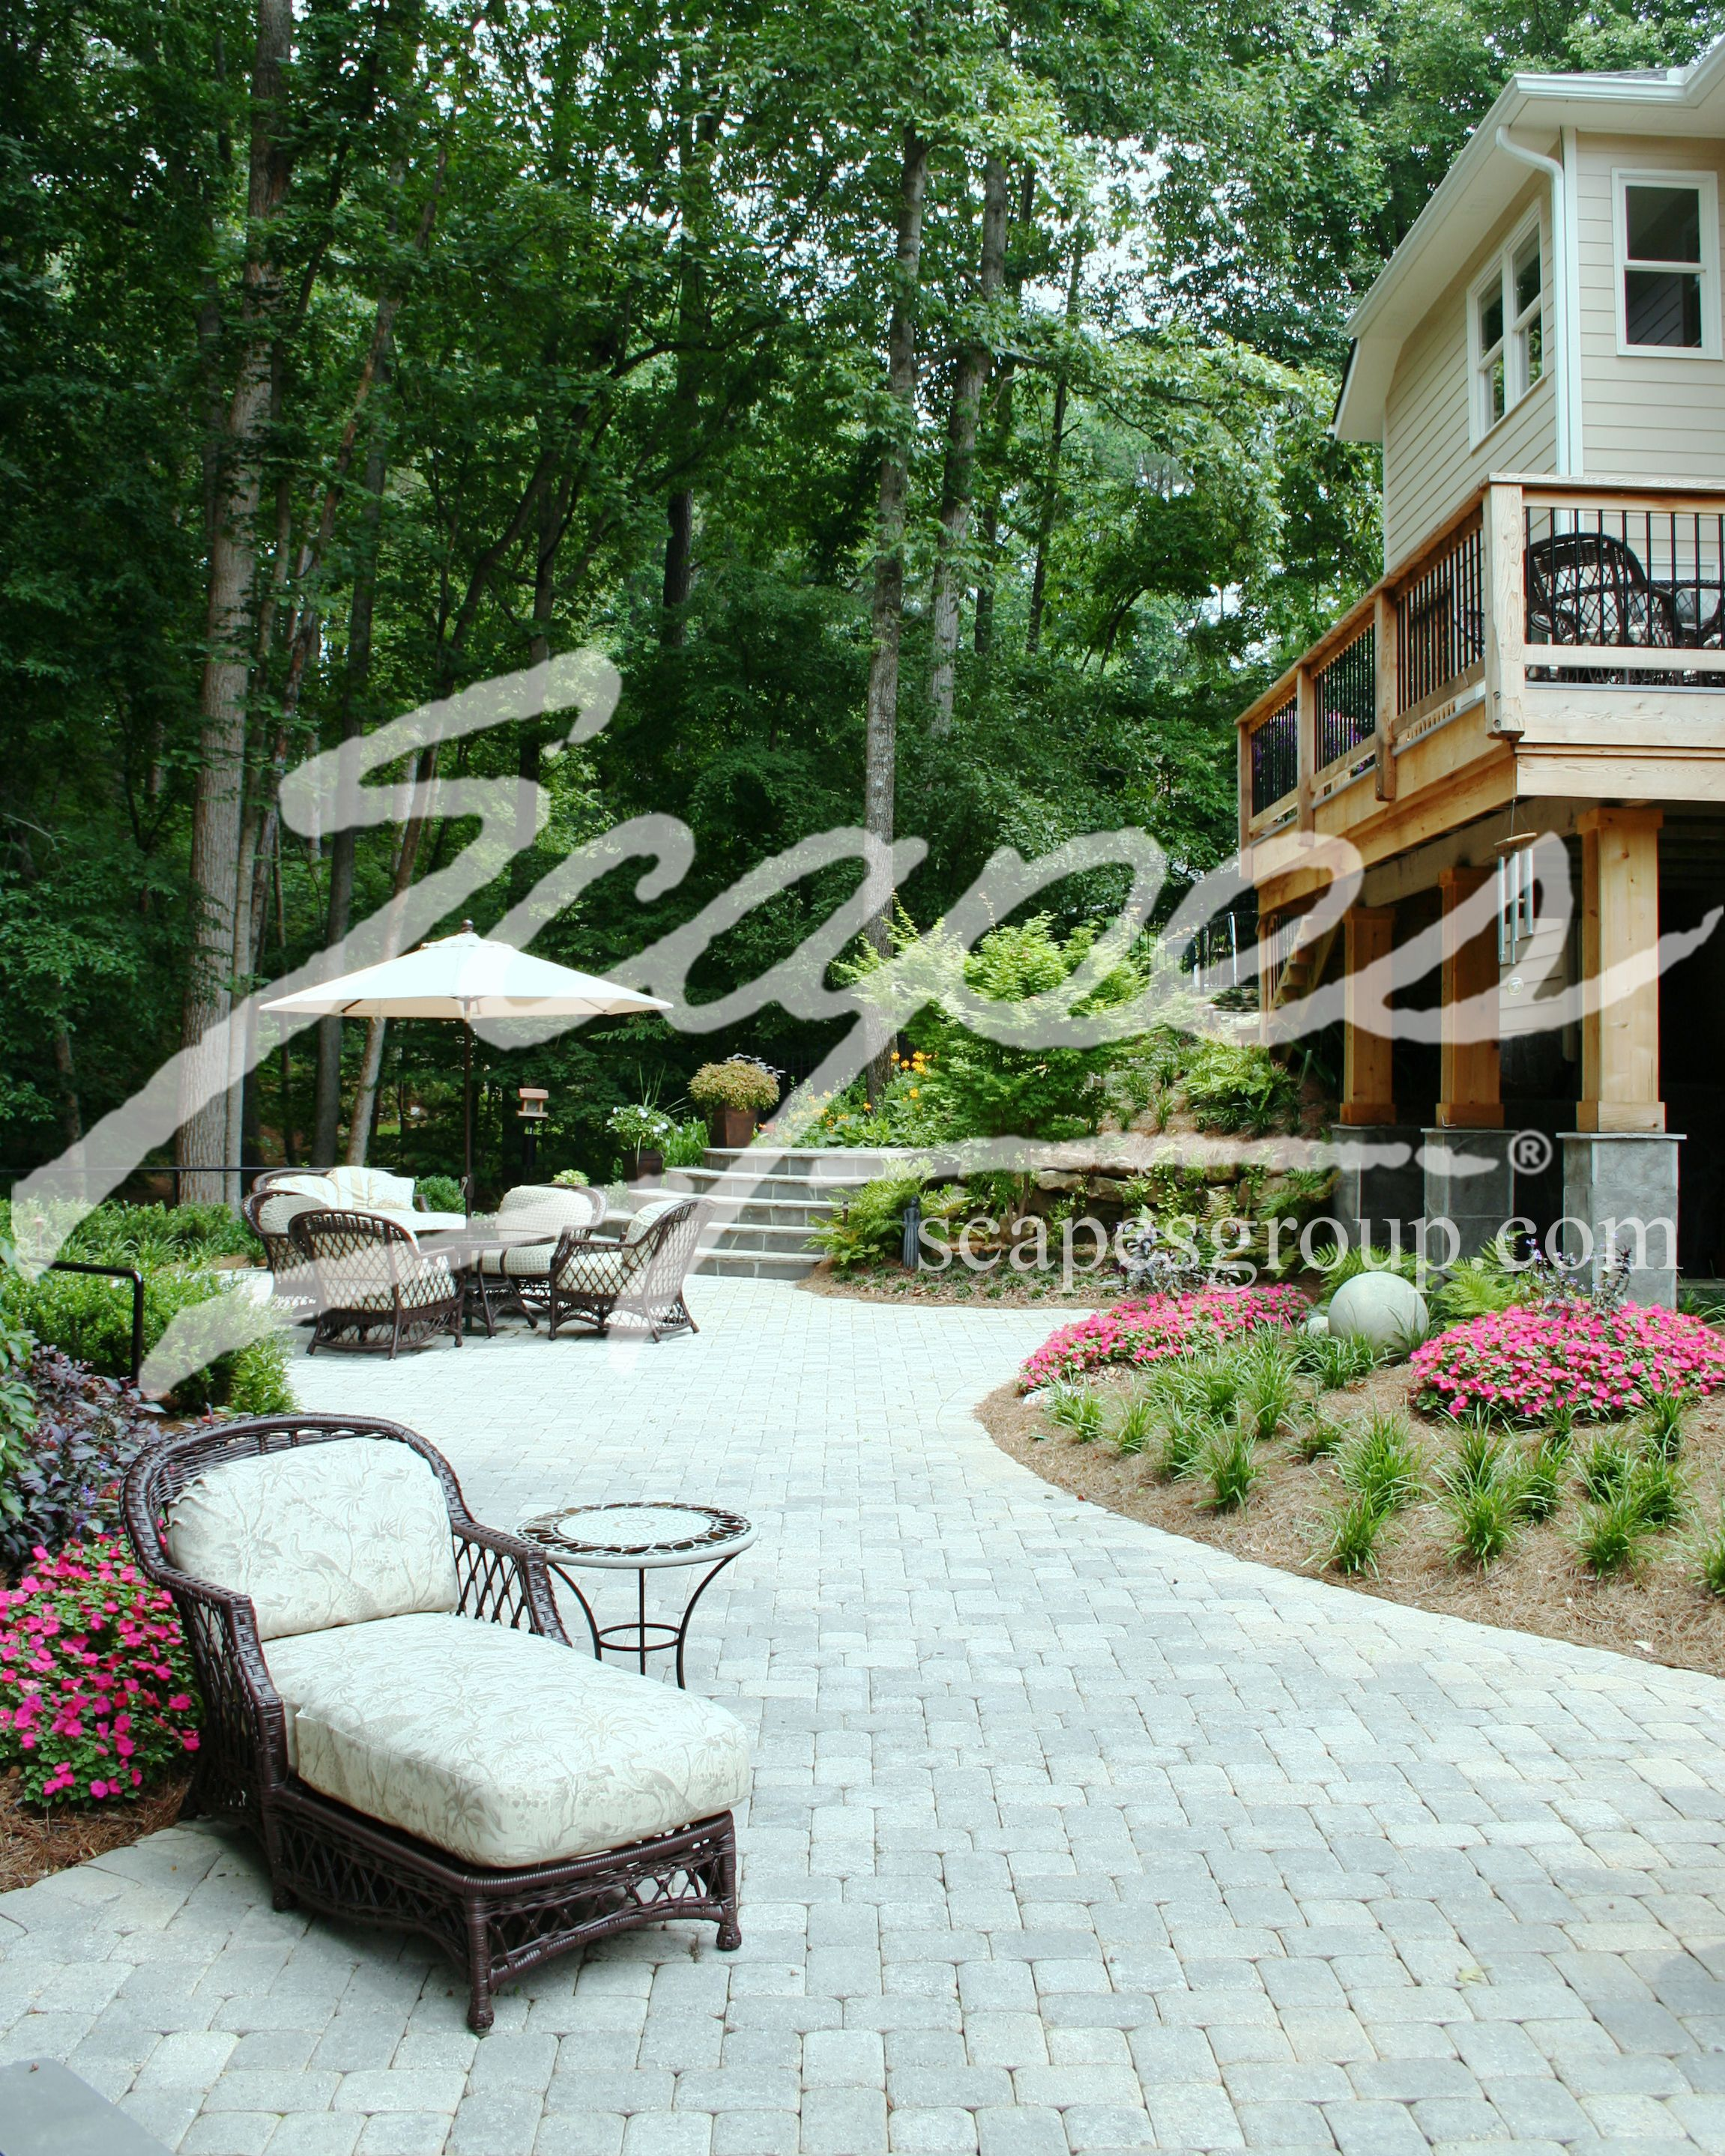 Dublin Cobble Paver Patio With Split Face West Virginia Stone Wall   Patio    Pinterest   Stone Walls, Patios And Backyard